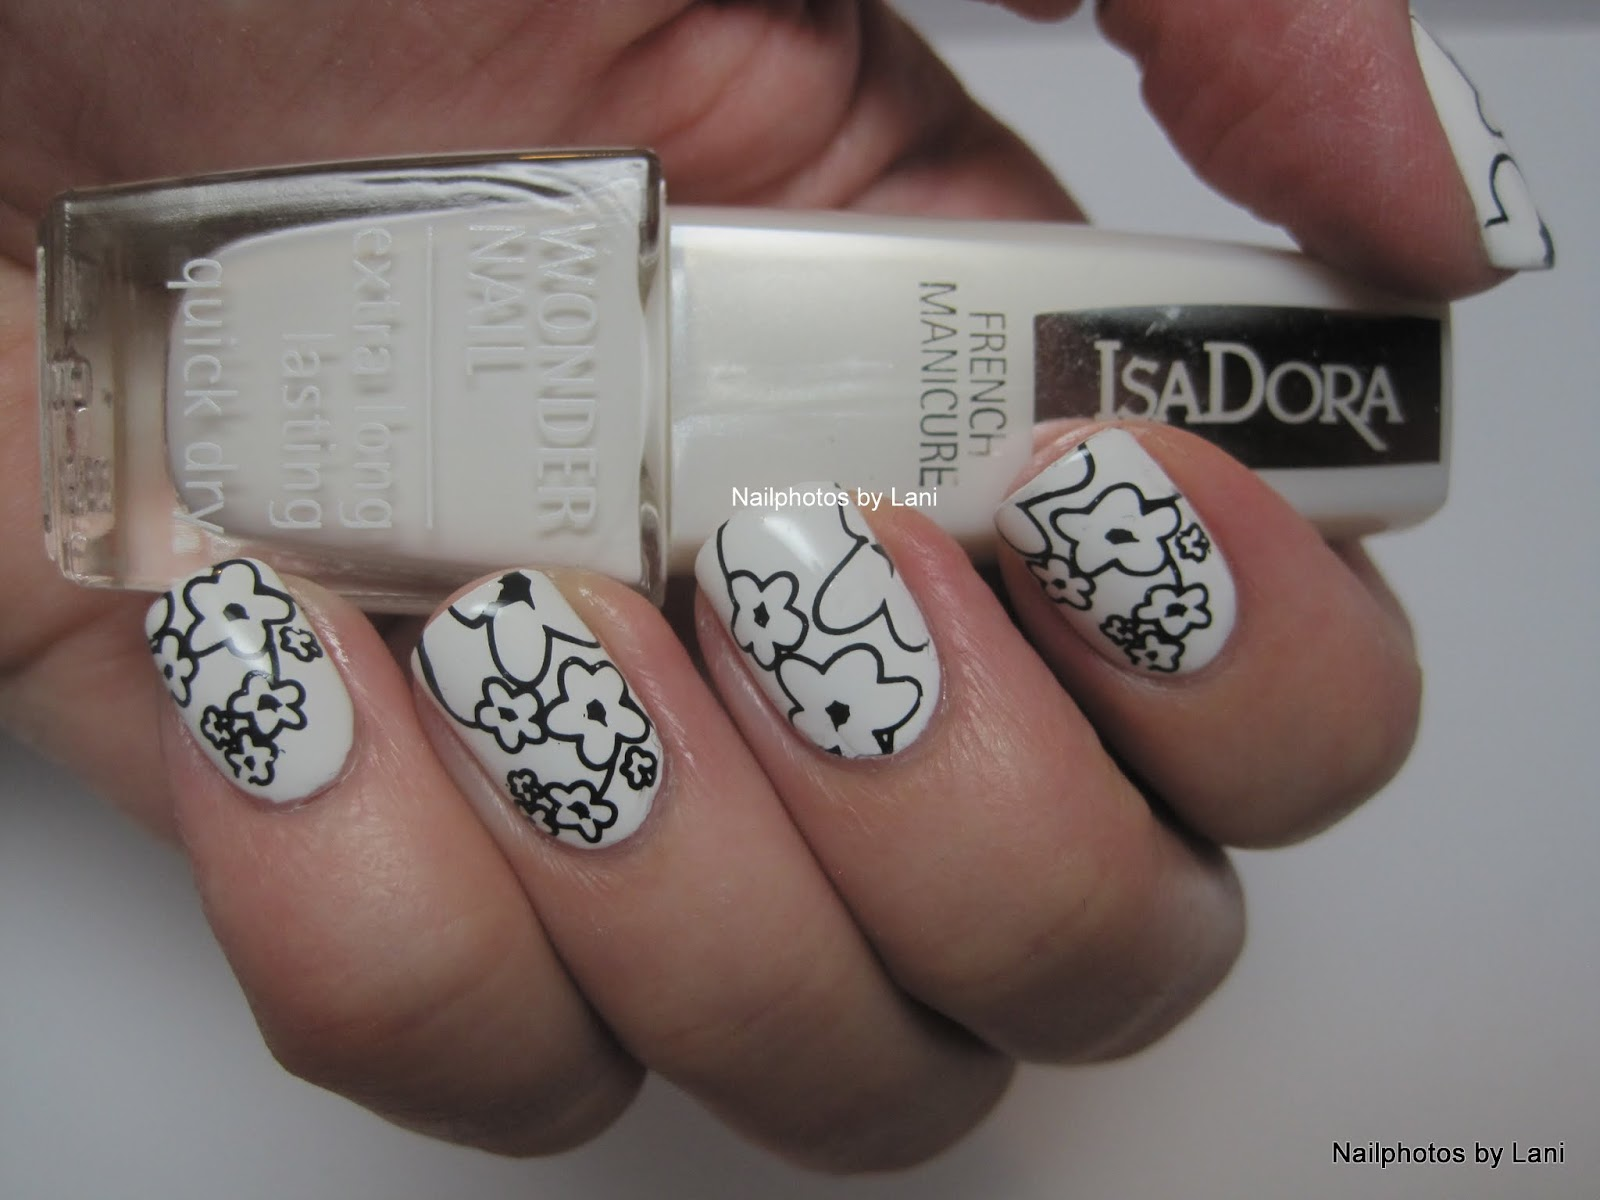 Nailphotos by Lani: #31Nails2014 Day 7: Black and White